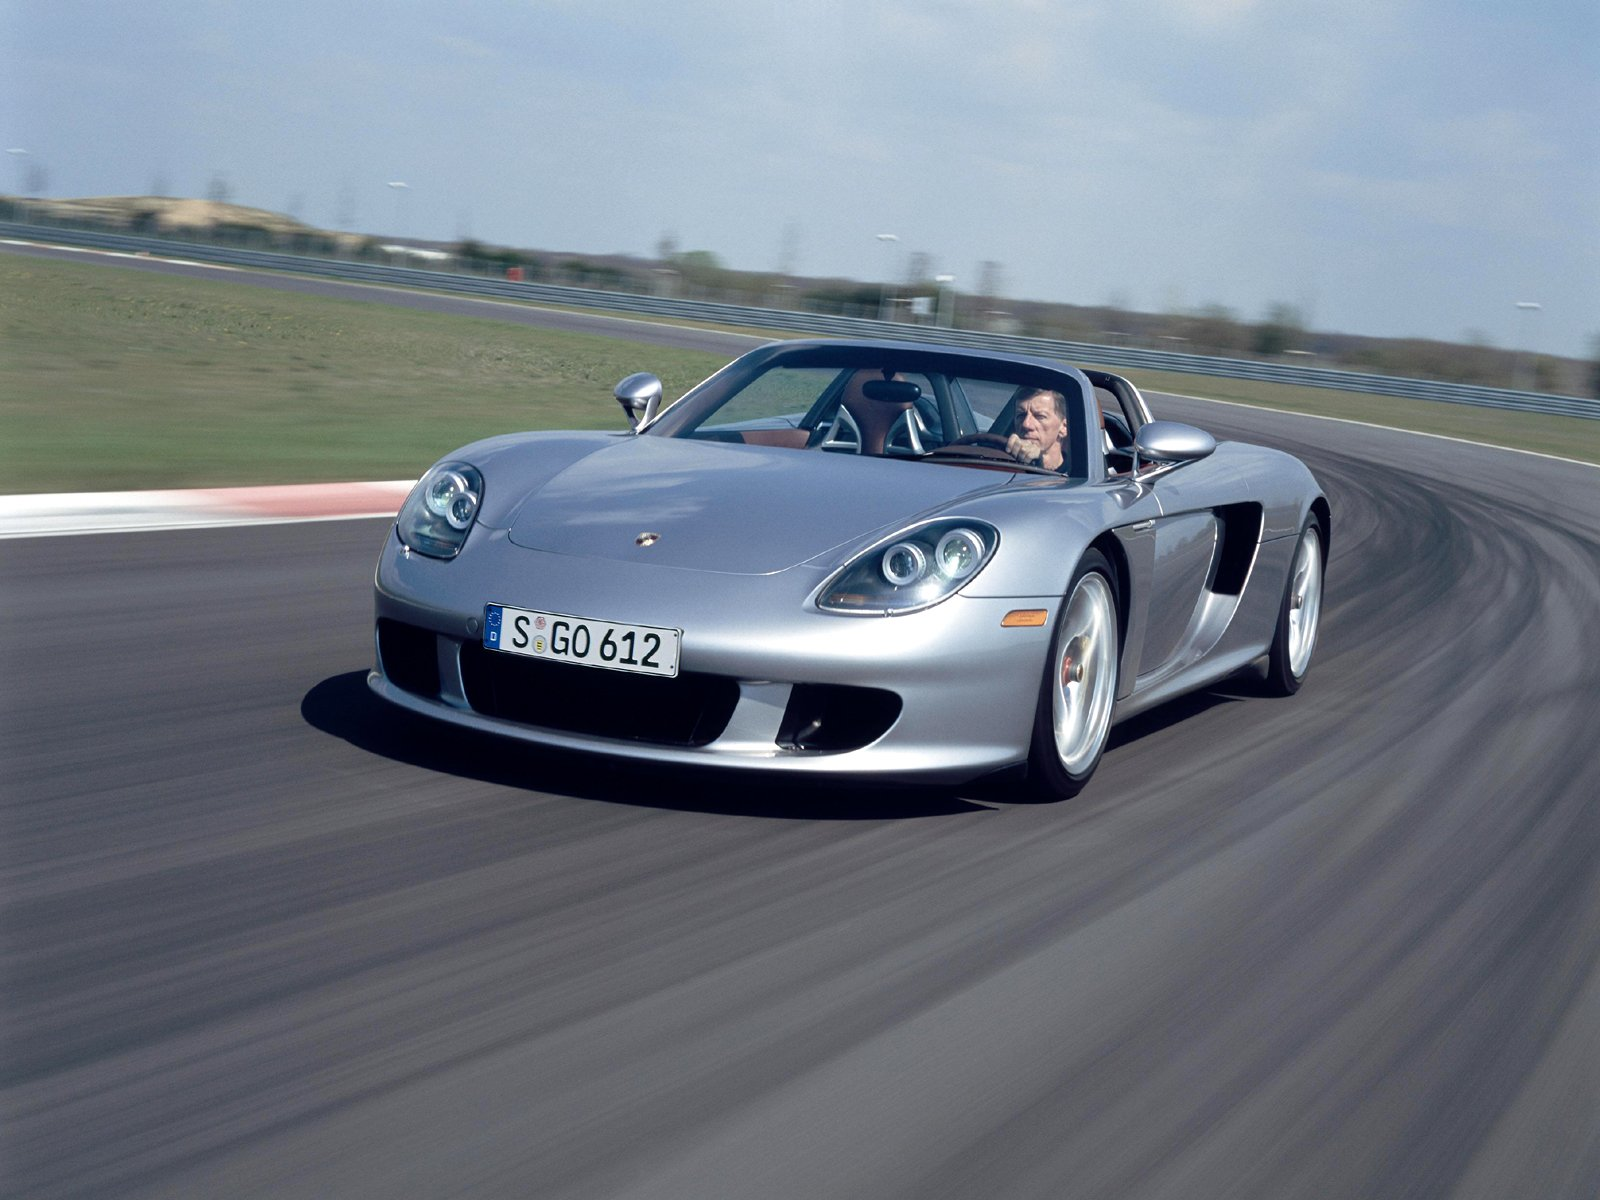 porsche carrera gt specs top speed price pictures engine review. Black Bedroom Furniture Sets. Home Design Ideas